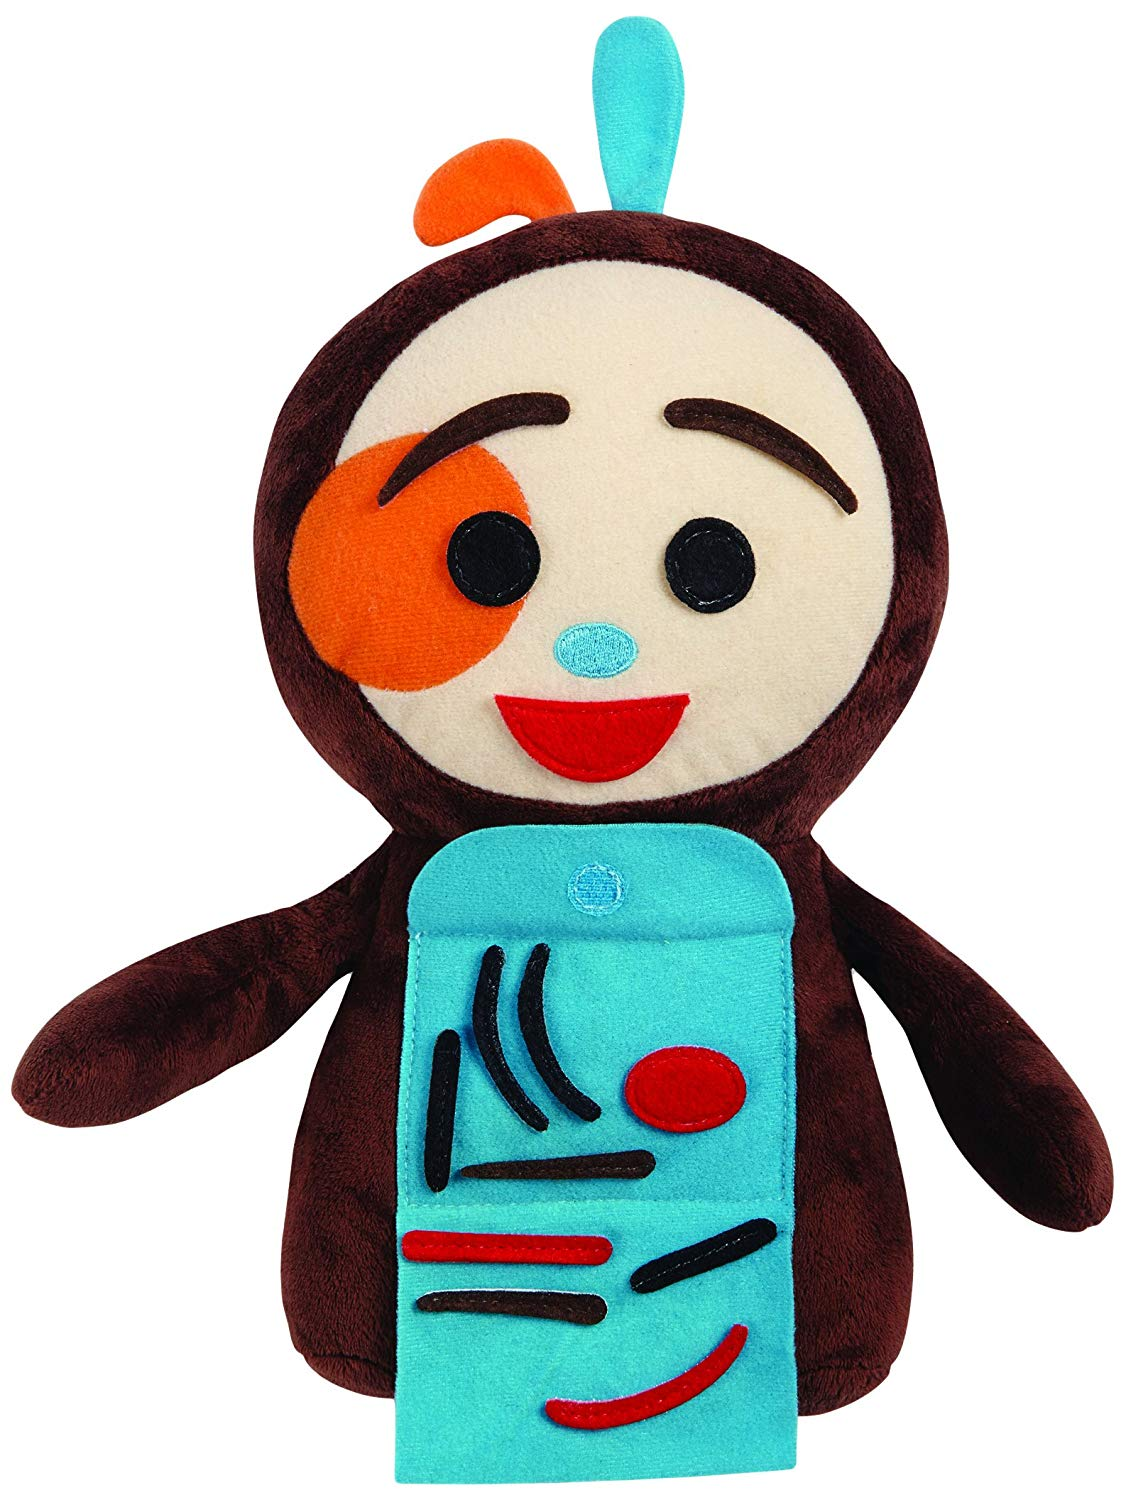 Edushape Feelings Friend Plush Toy